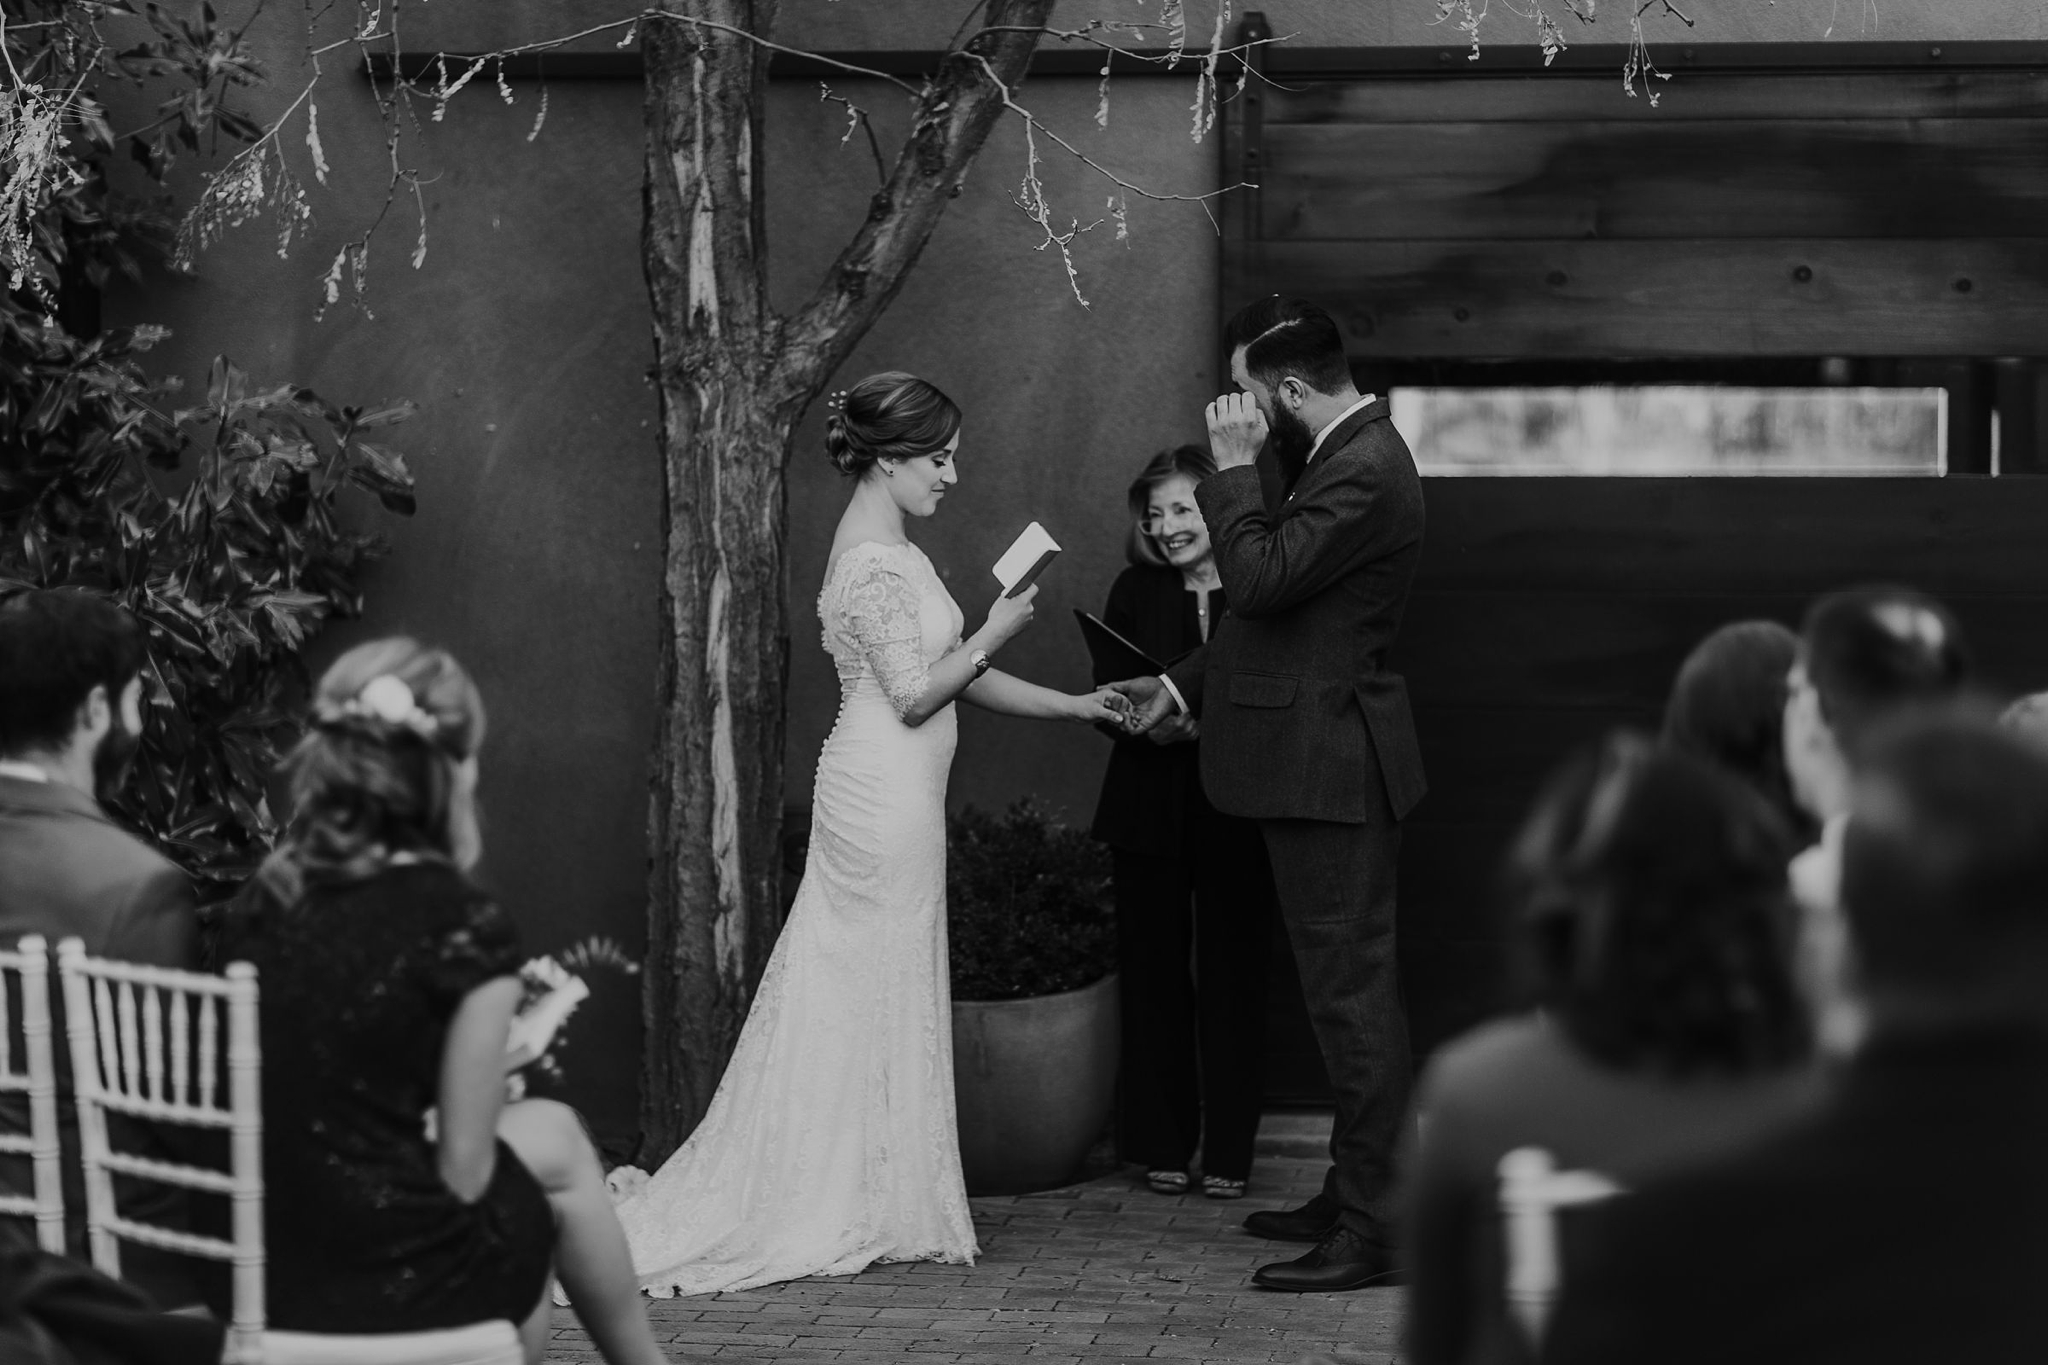 Alicia+lucia+photography+-+albuquerque+wedding+photographer+-+santa+fe+wedding+photography+-+new+mexico+wedding+photographer+-+new+mexico+wedding+-+wedding+vows+-+writing+your+own+vows+-+wedding+inspo_0020.jpg